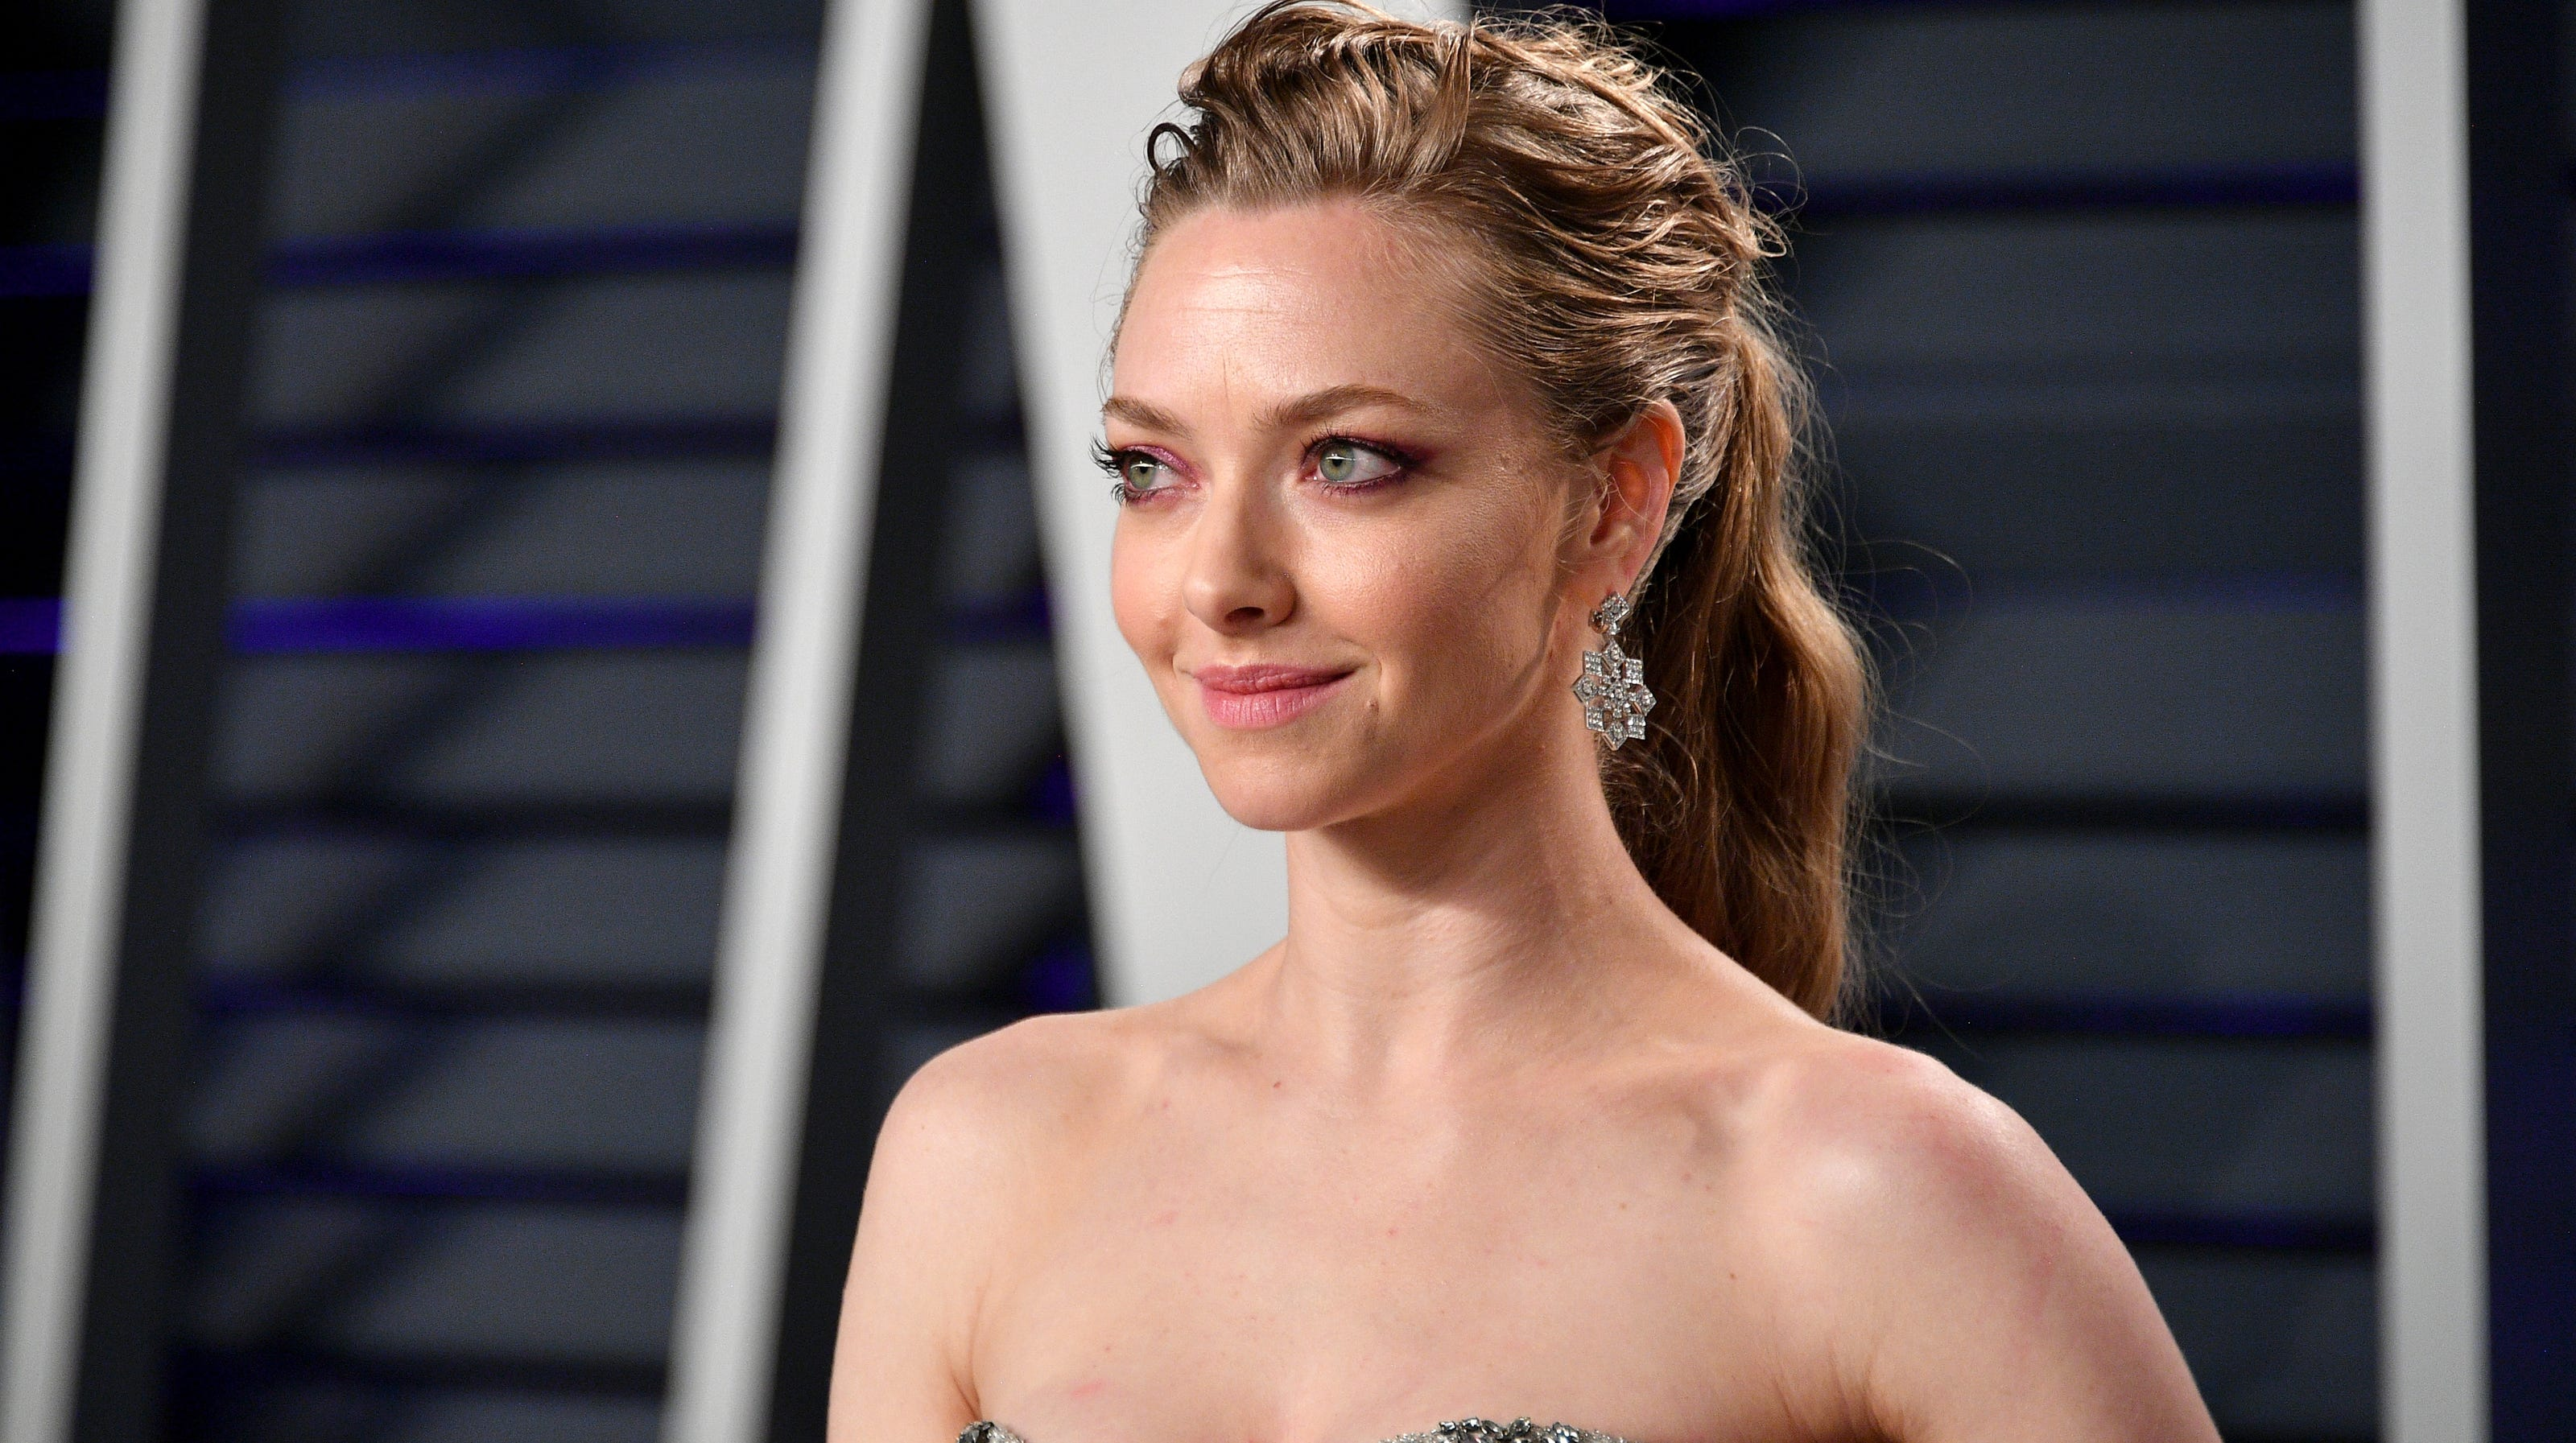 Amanda Seyfried says she has no time for nudity or sex